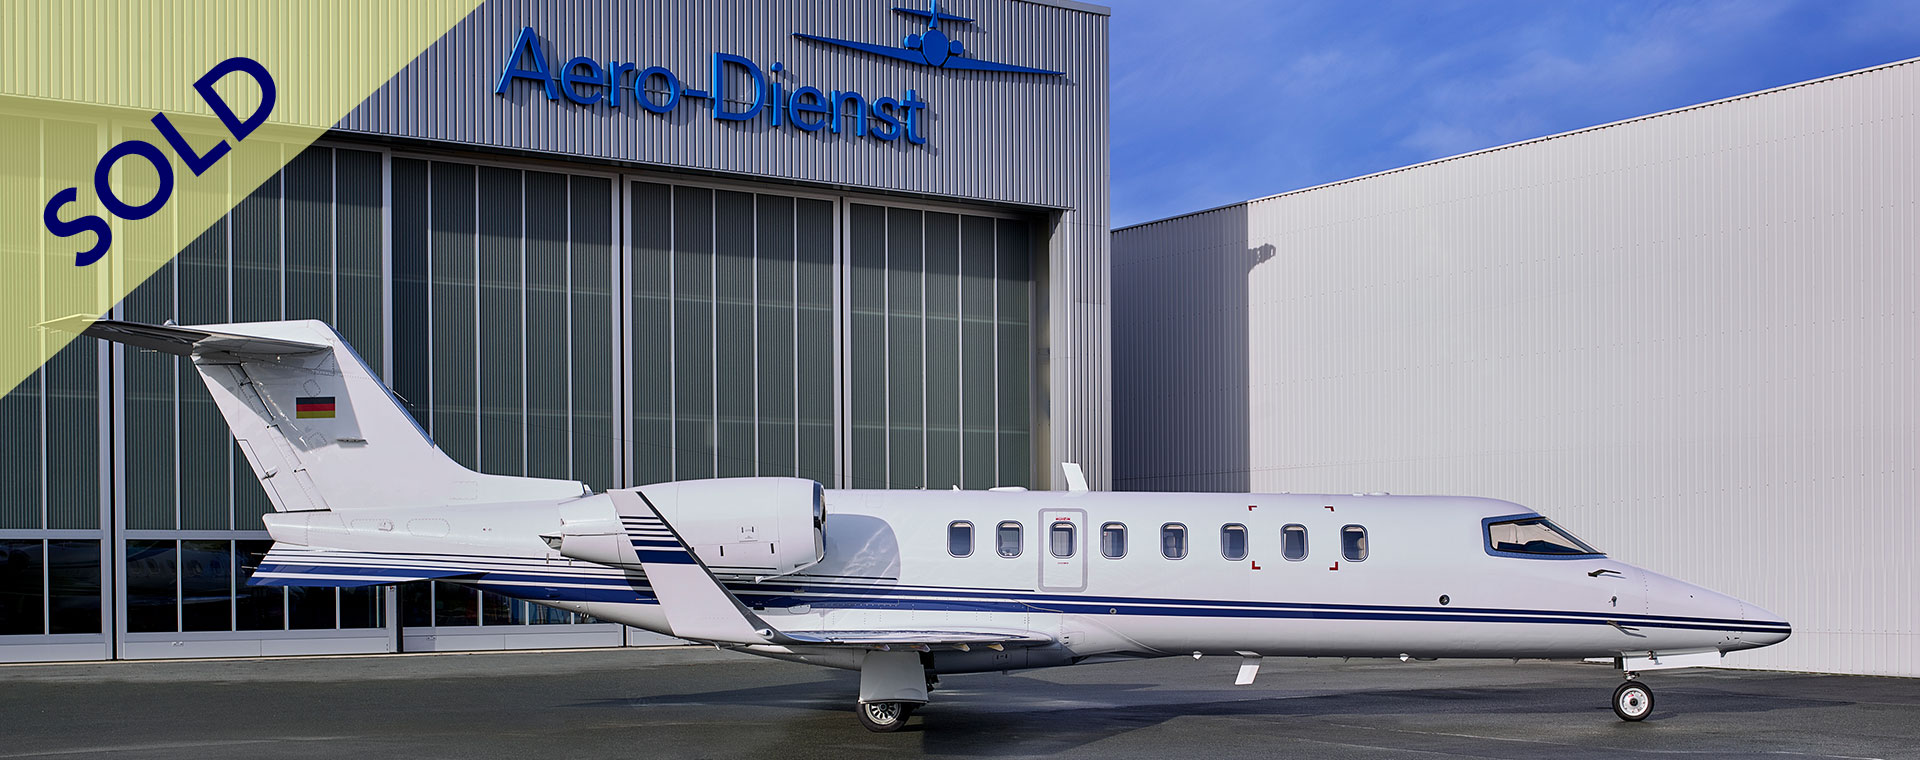 Learjet 45XR SOLD - Aero-Dienst - Aircraft Sales